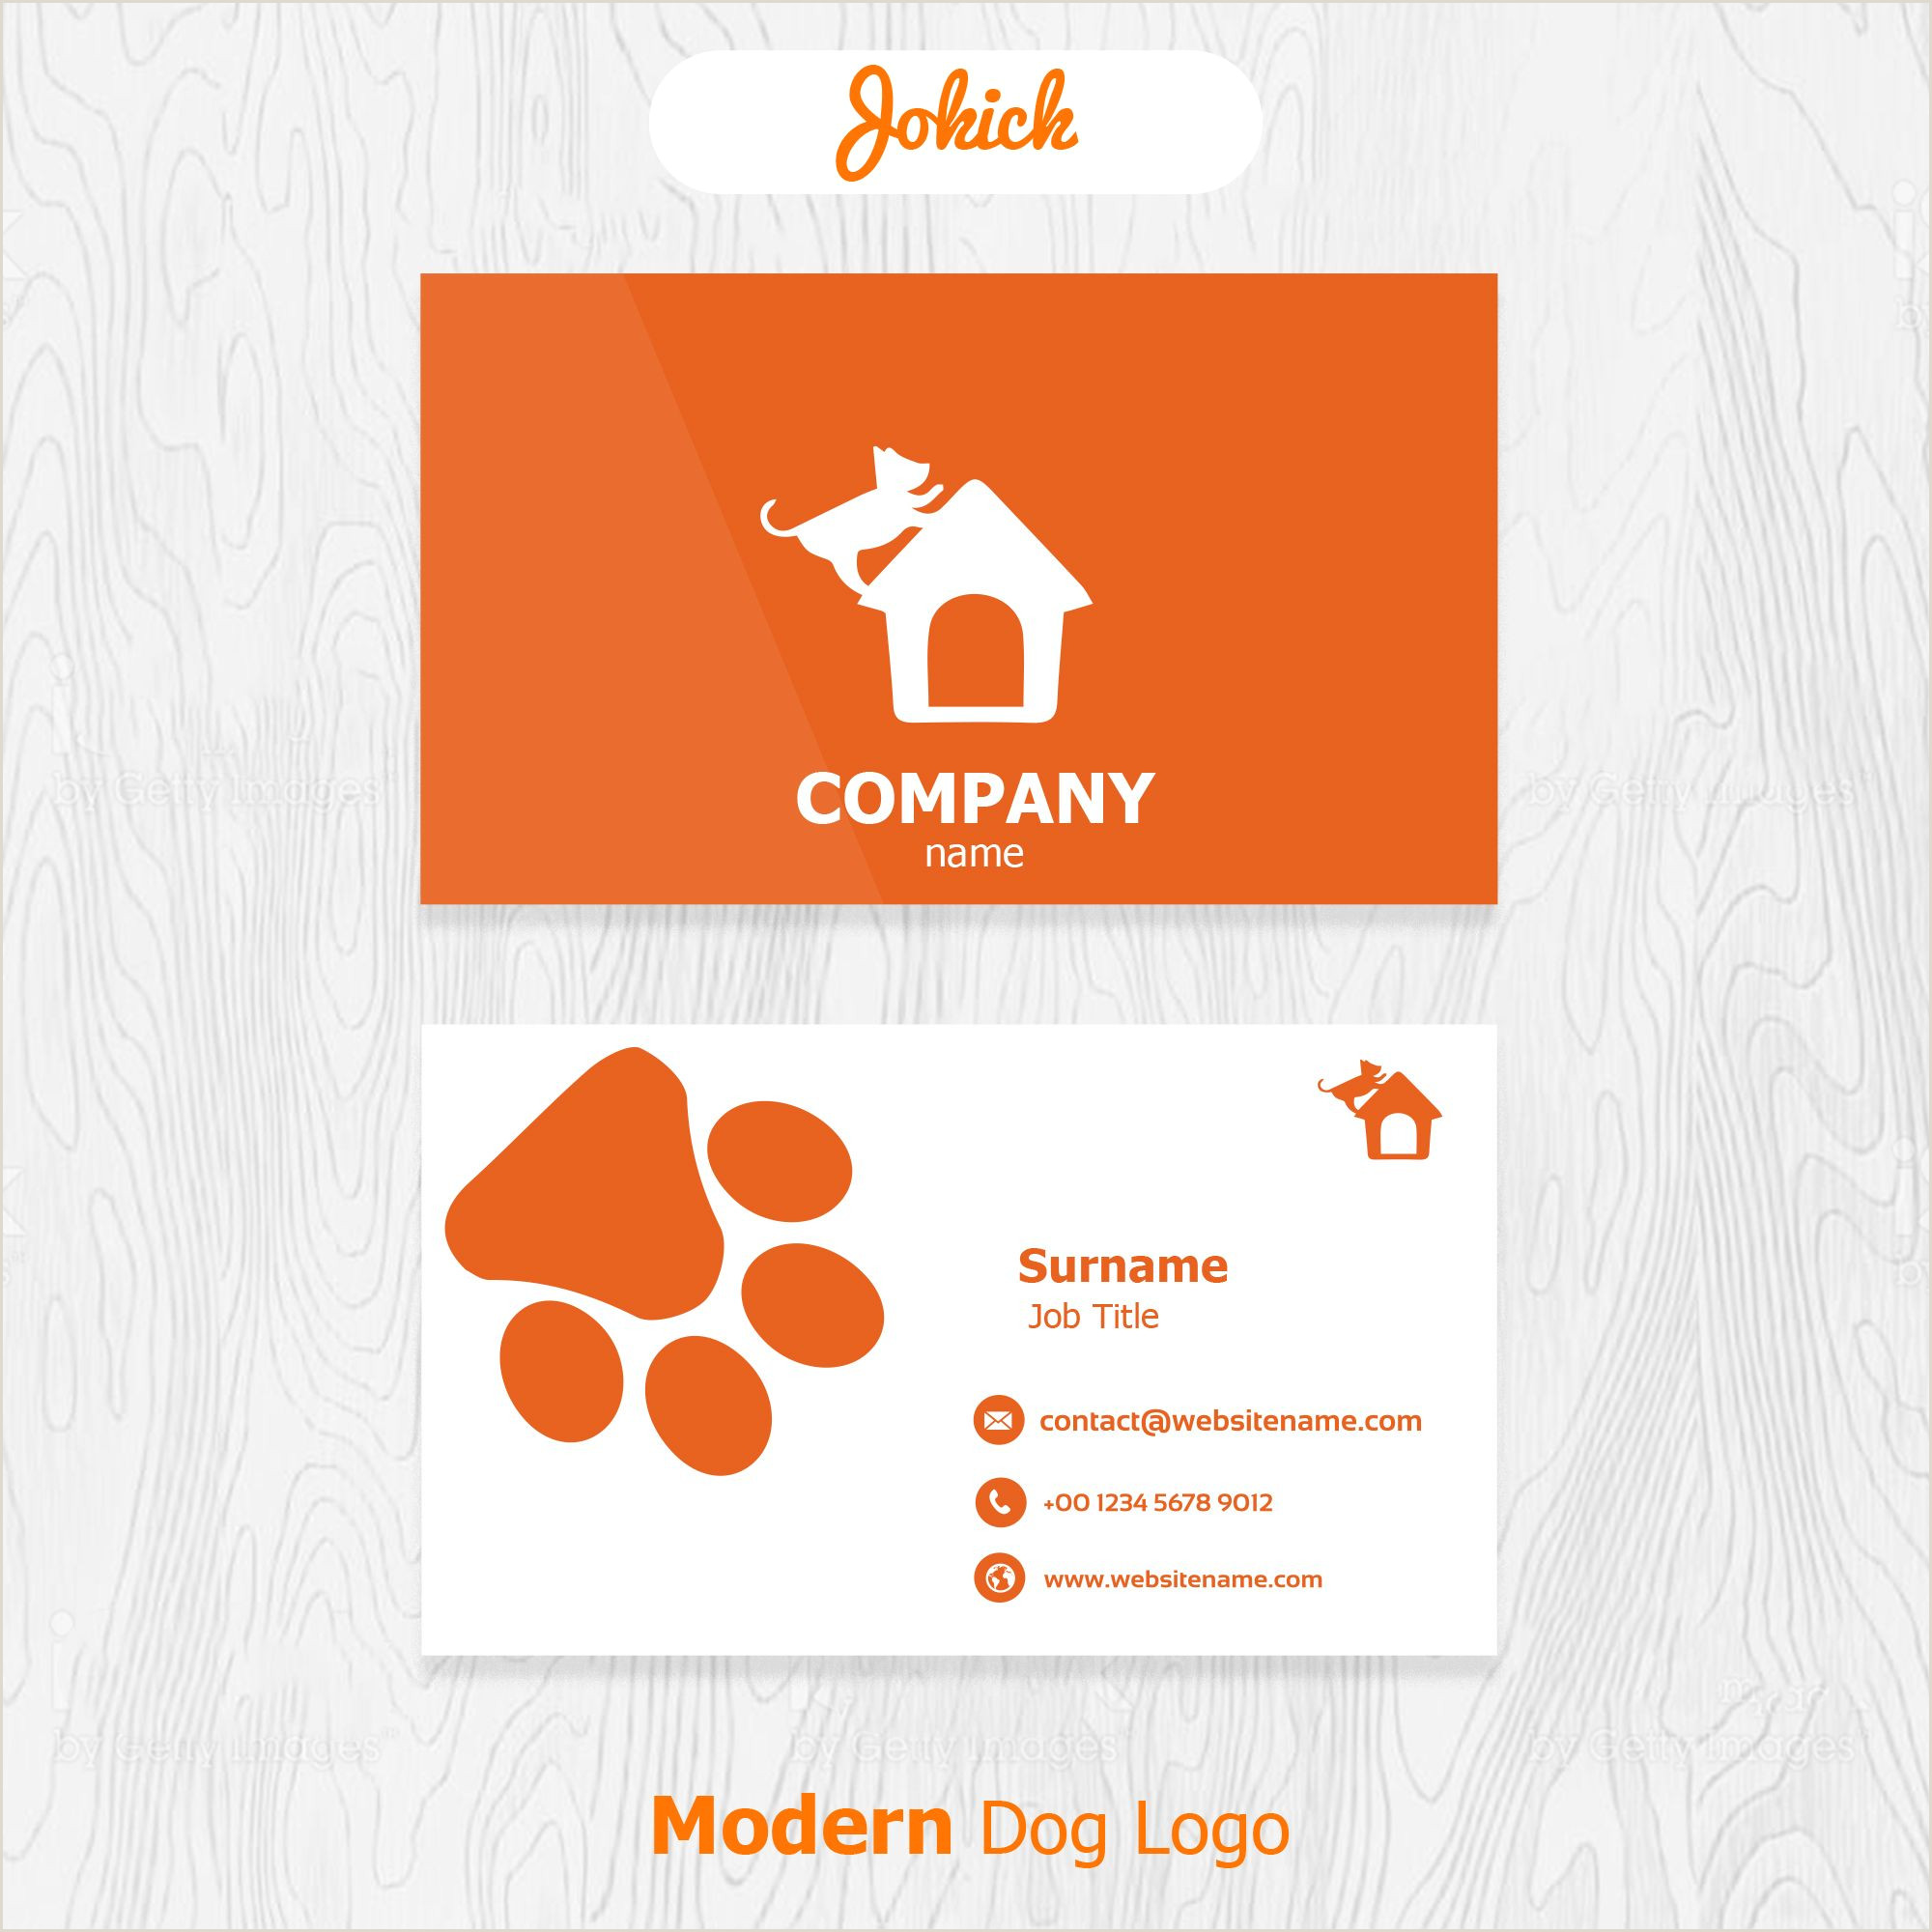 Business Card Background Modern Doggy Business Card Design Which Has White And